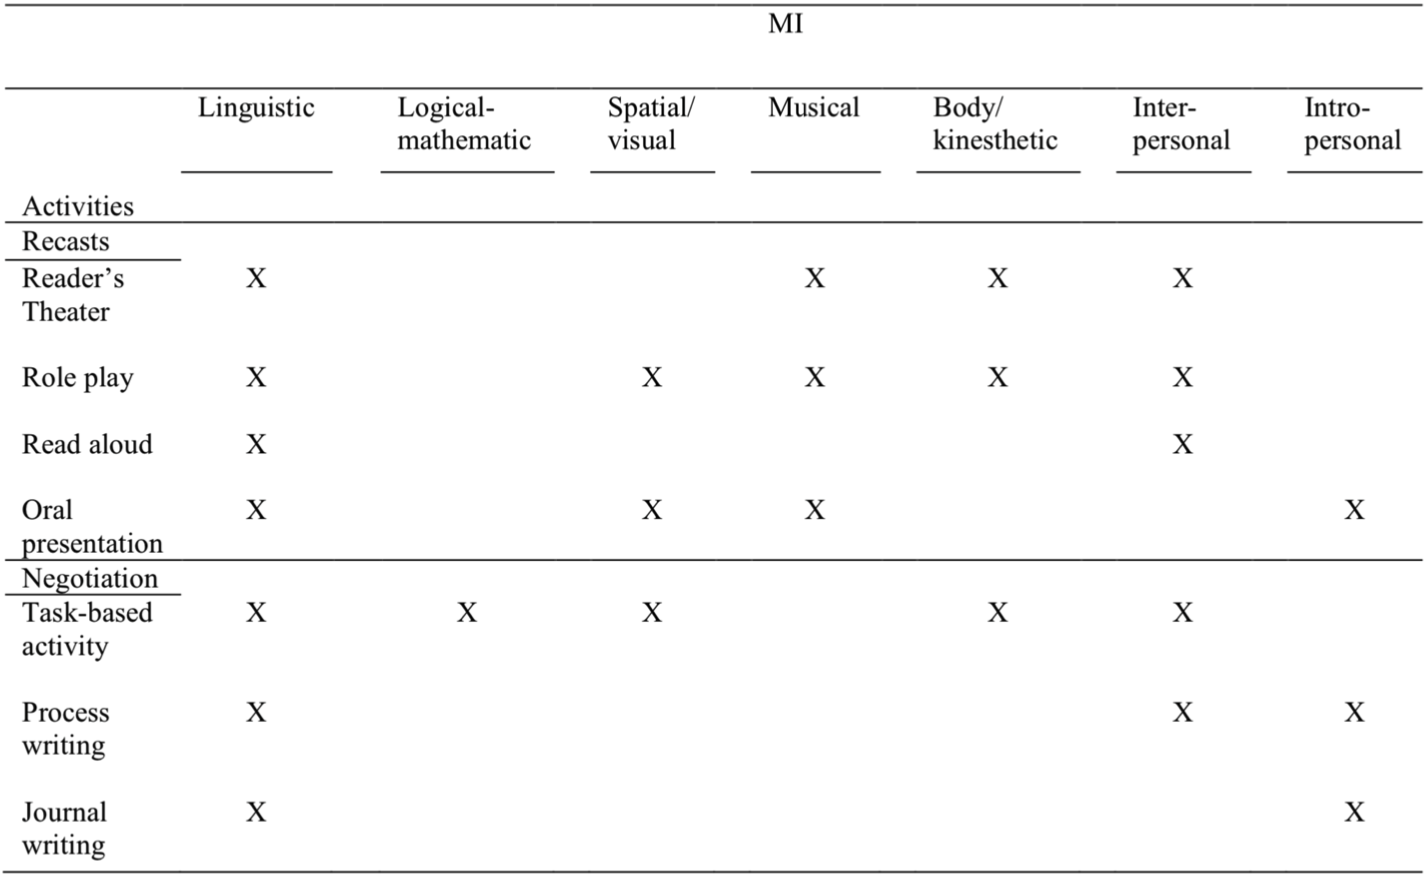 """Source: Yeh, Ellen. """"Teaching Culture and Language through the Multiple Intelligences Film Teaching Model in the ESL/EFL Classroom."""" The Journal of Effective Teaching, vol. 14, no. 1, 2014, Table 1."""